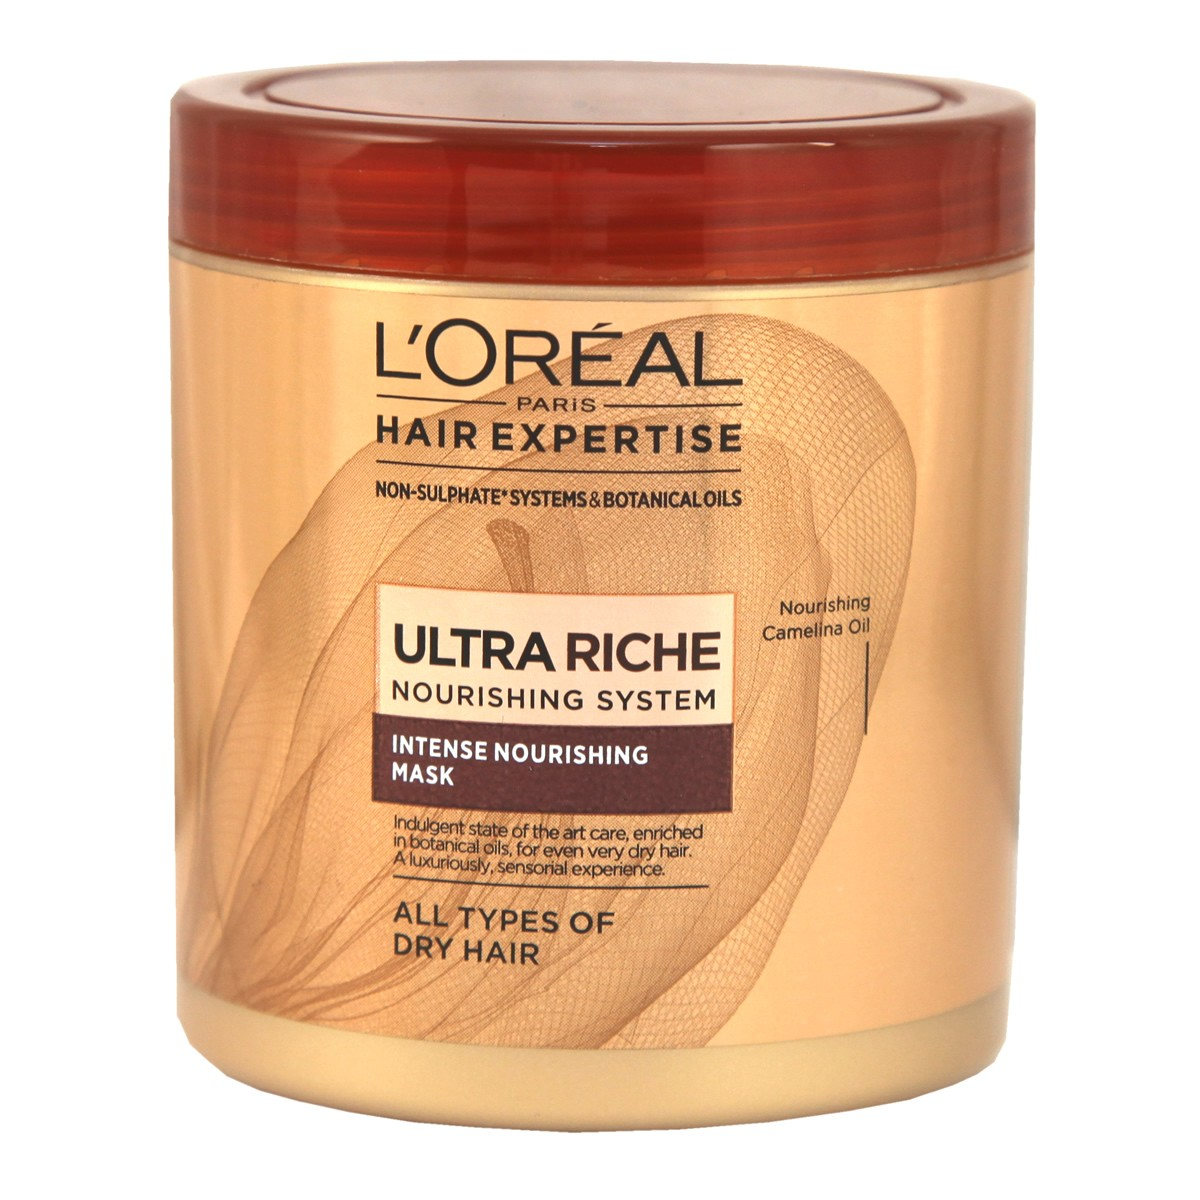 L'Oreal Paris Ultra Riche Intense Nourishing Mask